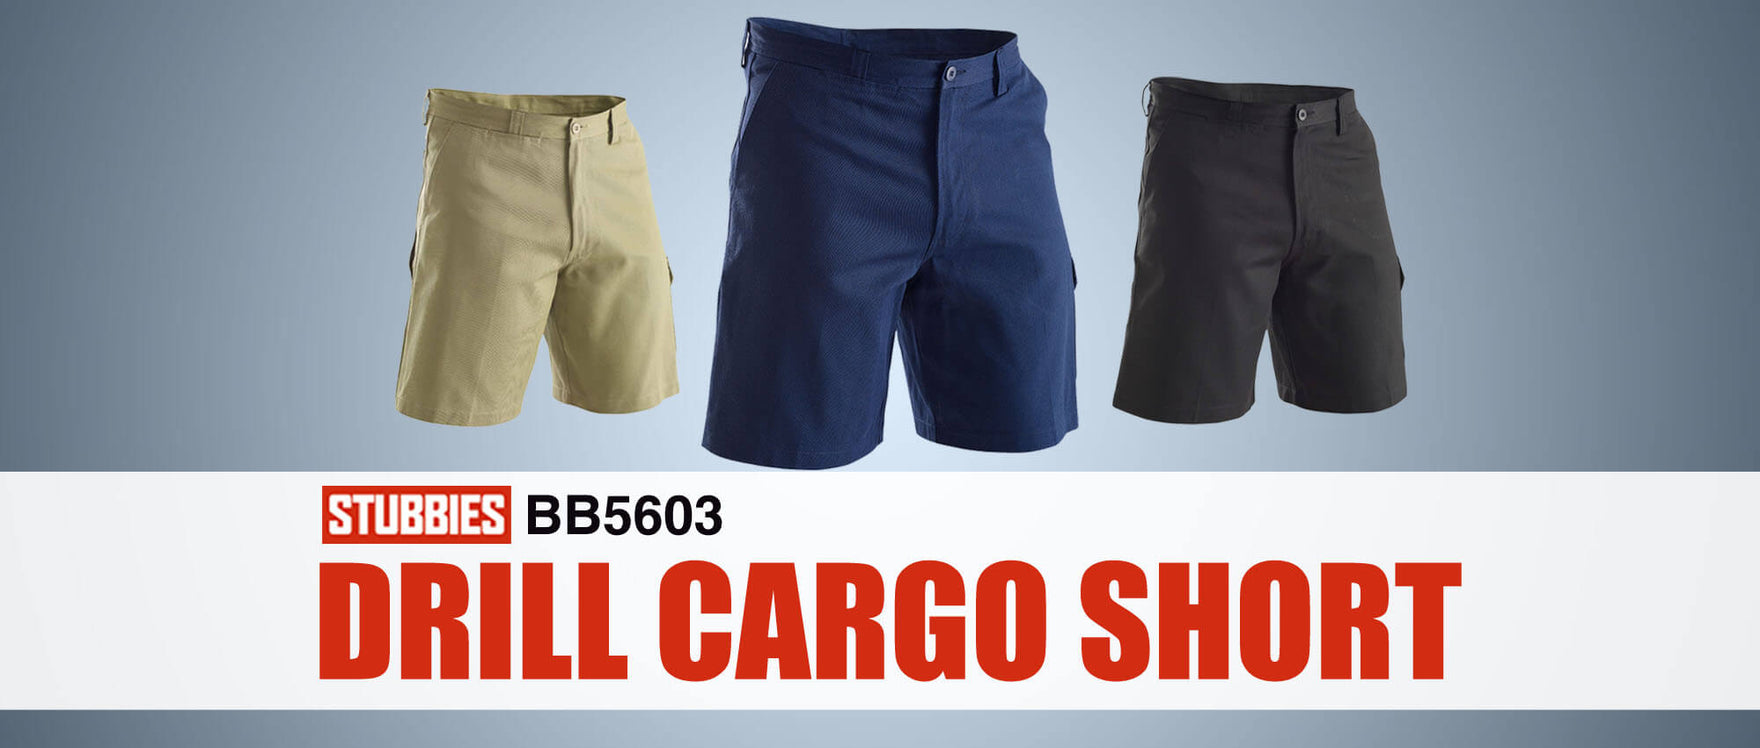 Stubbies BB5603 Drill Cargo Short